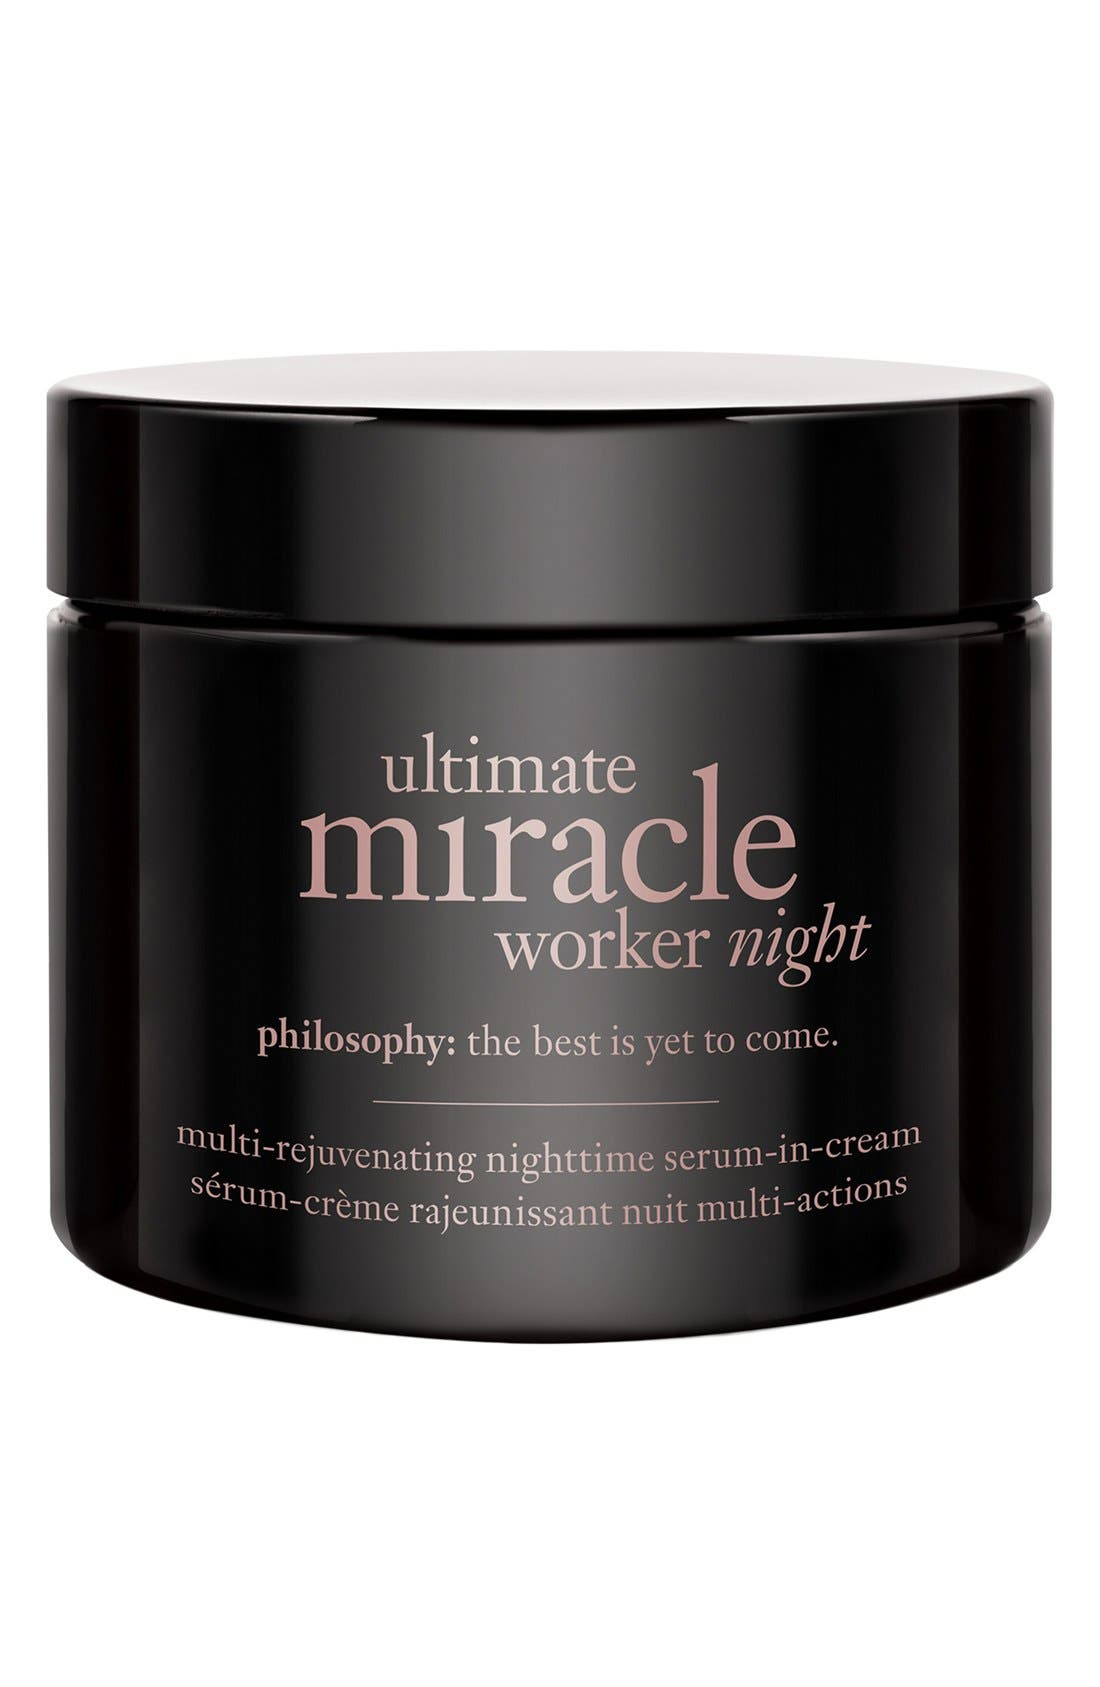 philosophy 'ultimate miracle worker night' multi-rejuvenating nighttime serum-in-cream